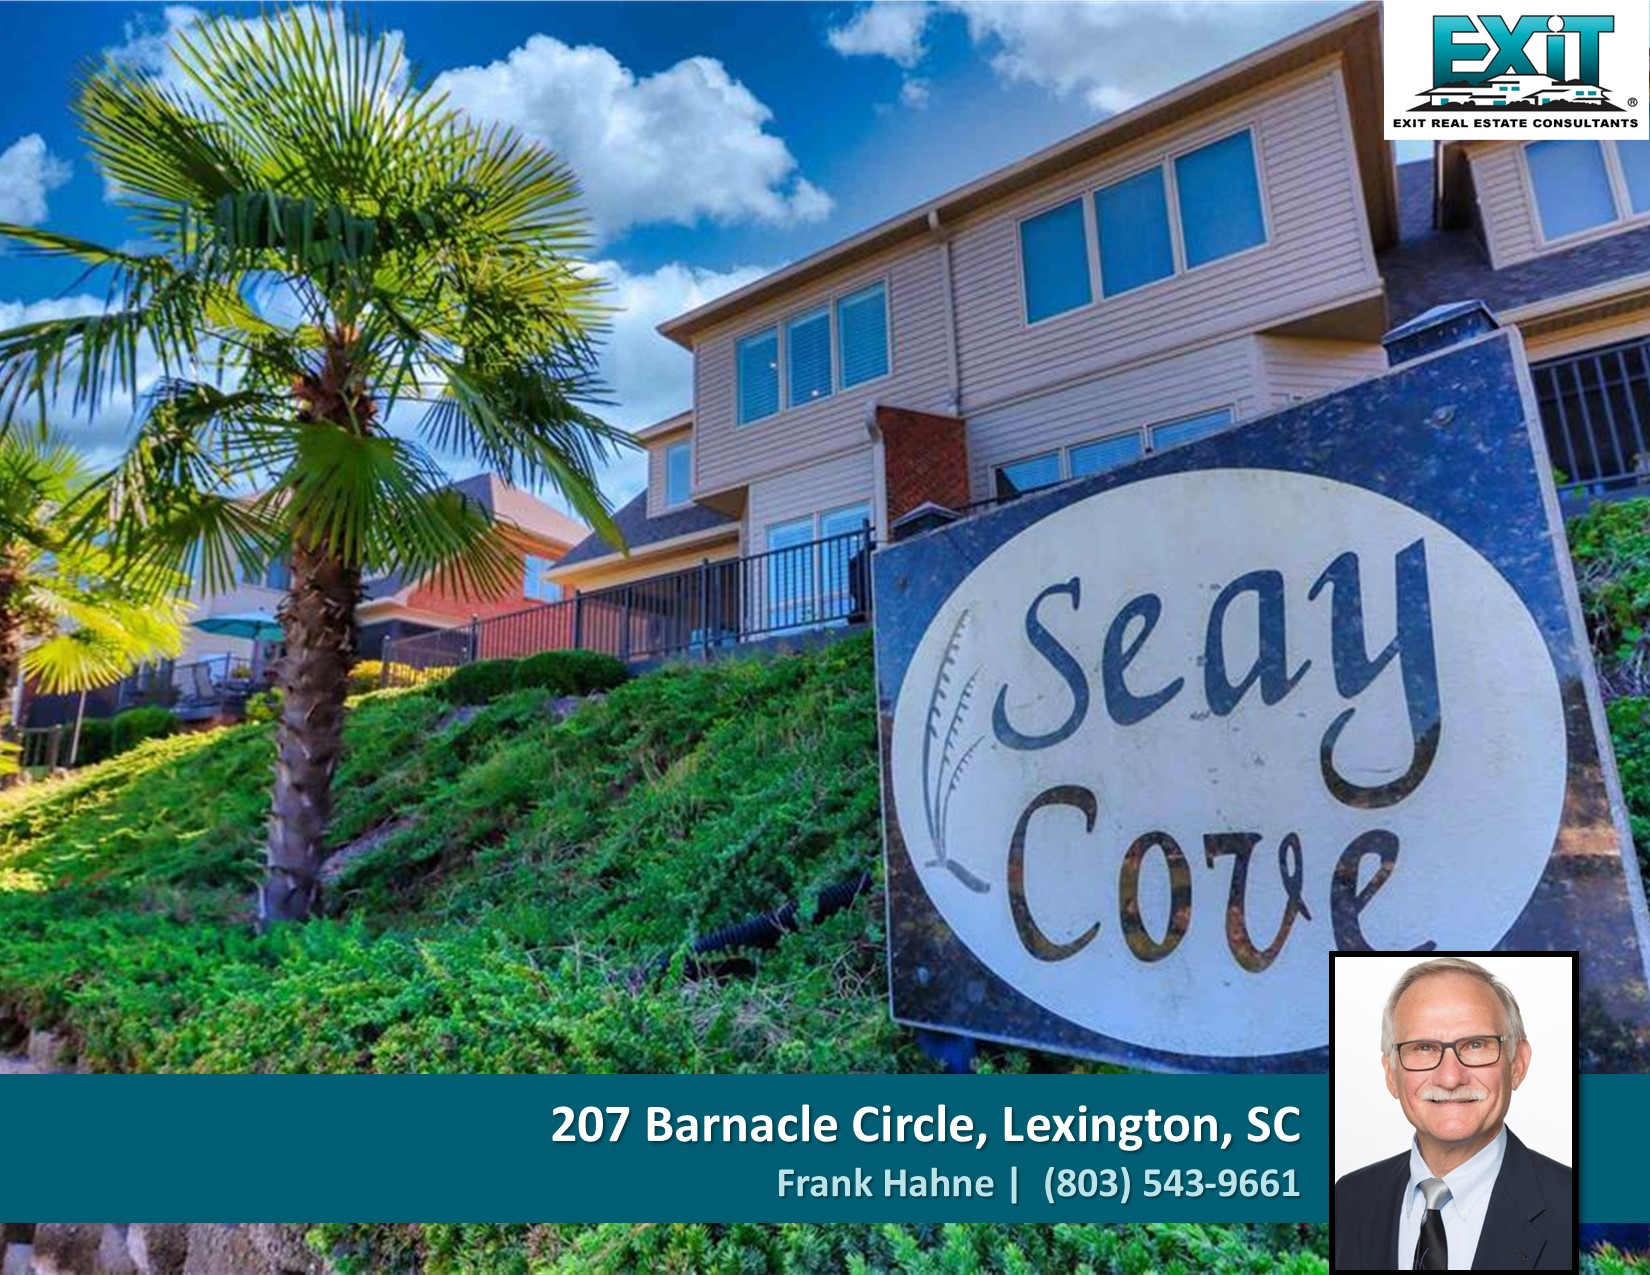 Just listed in Seay Cove